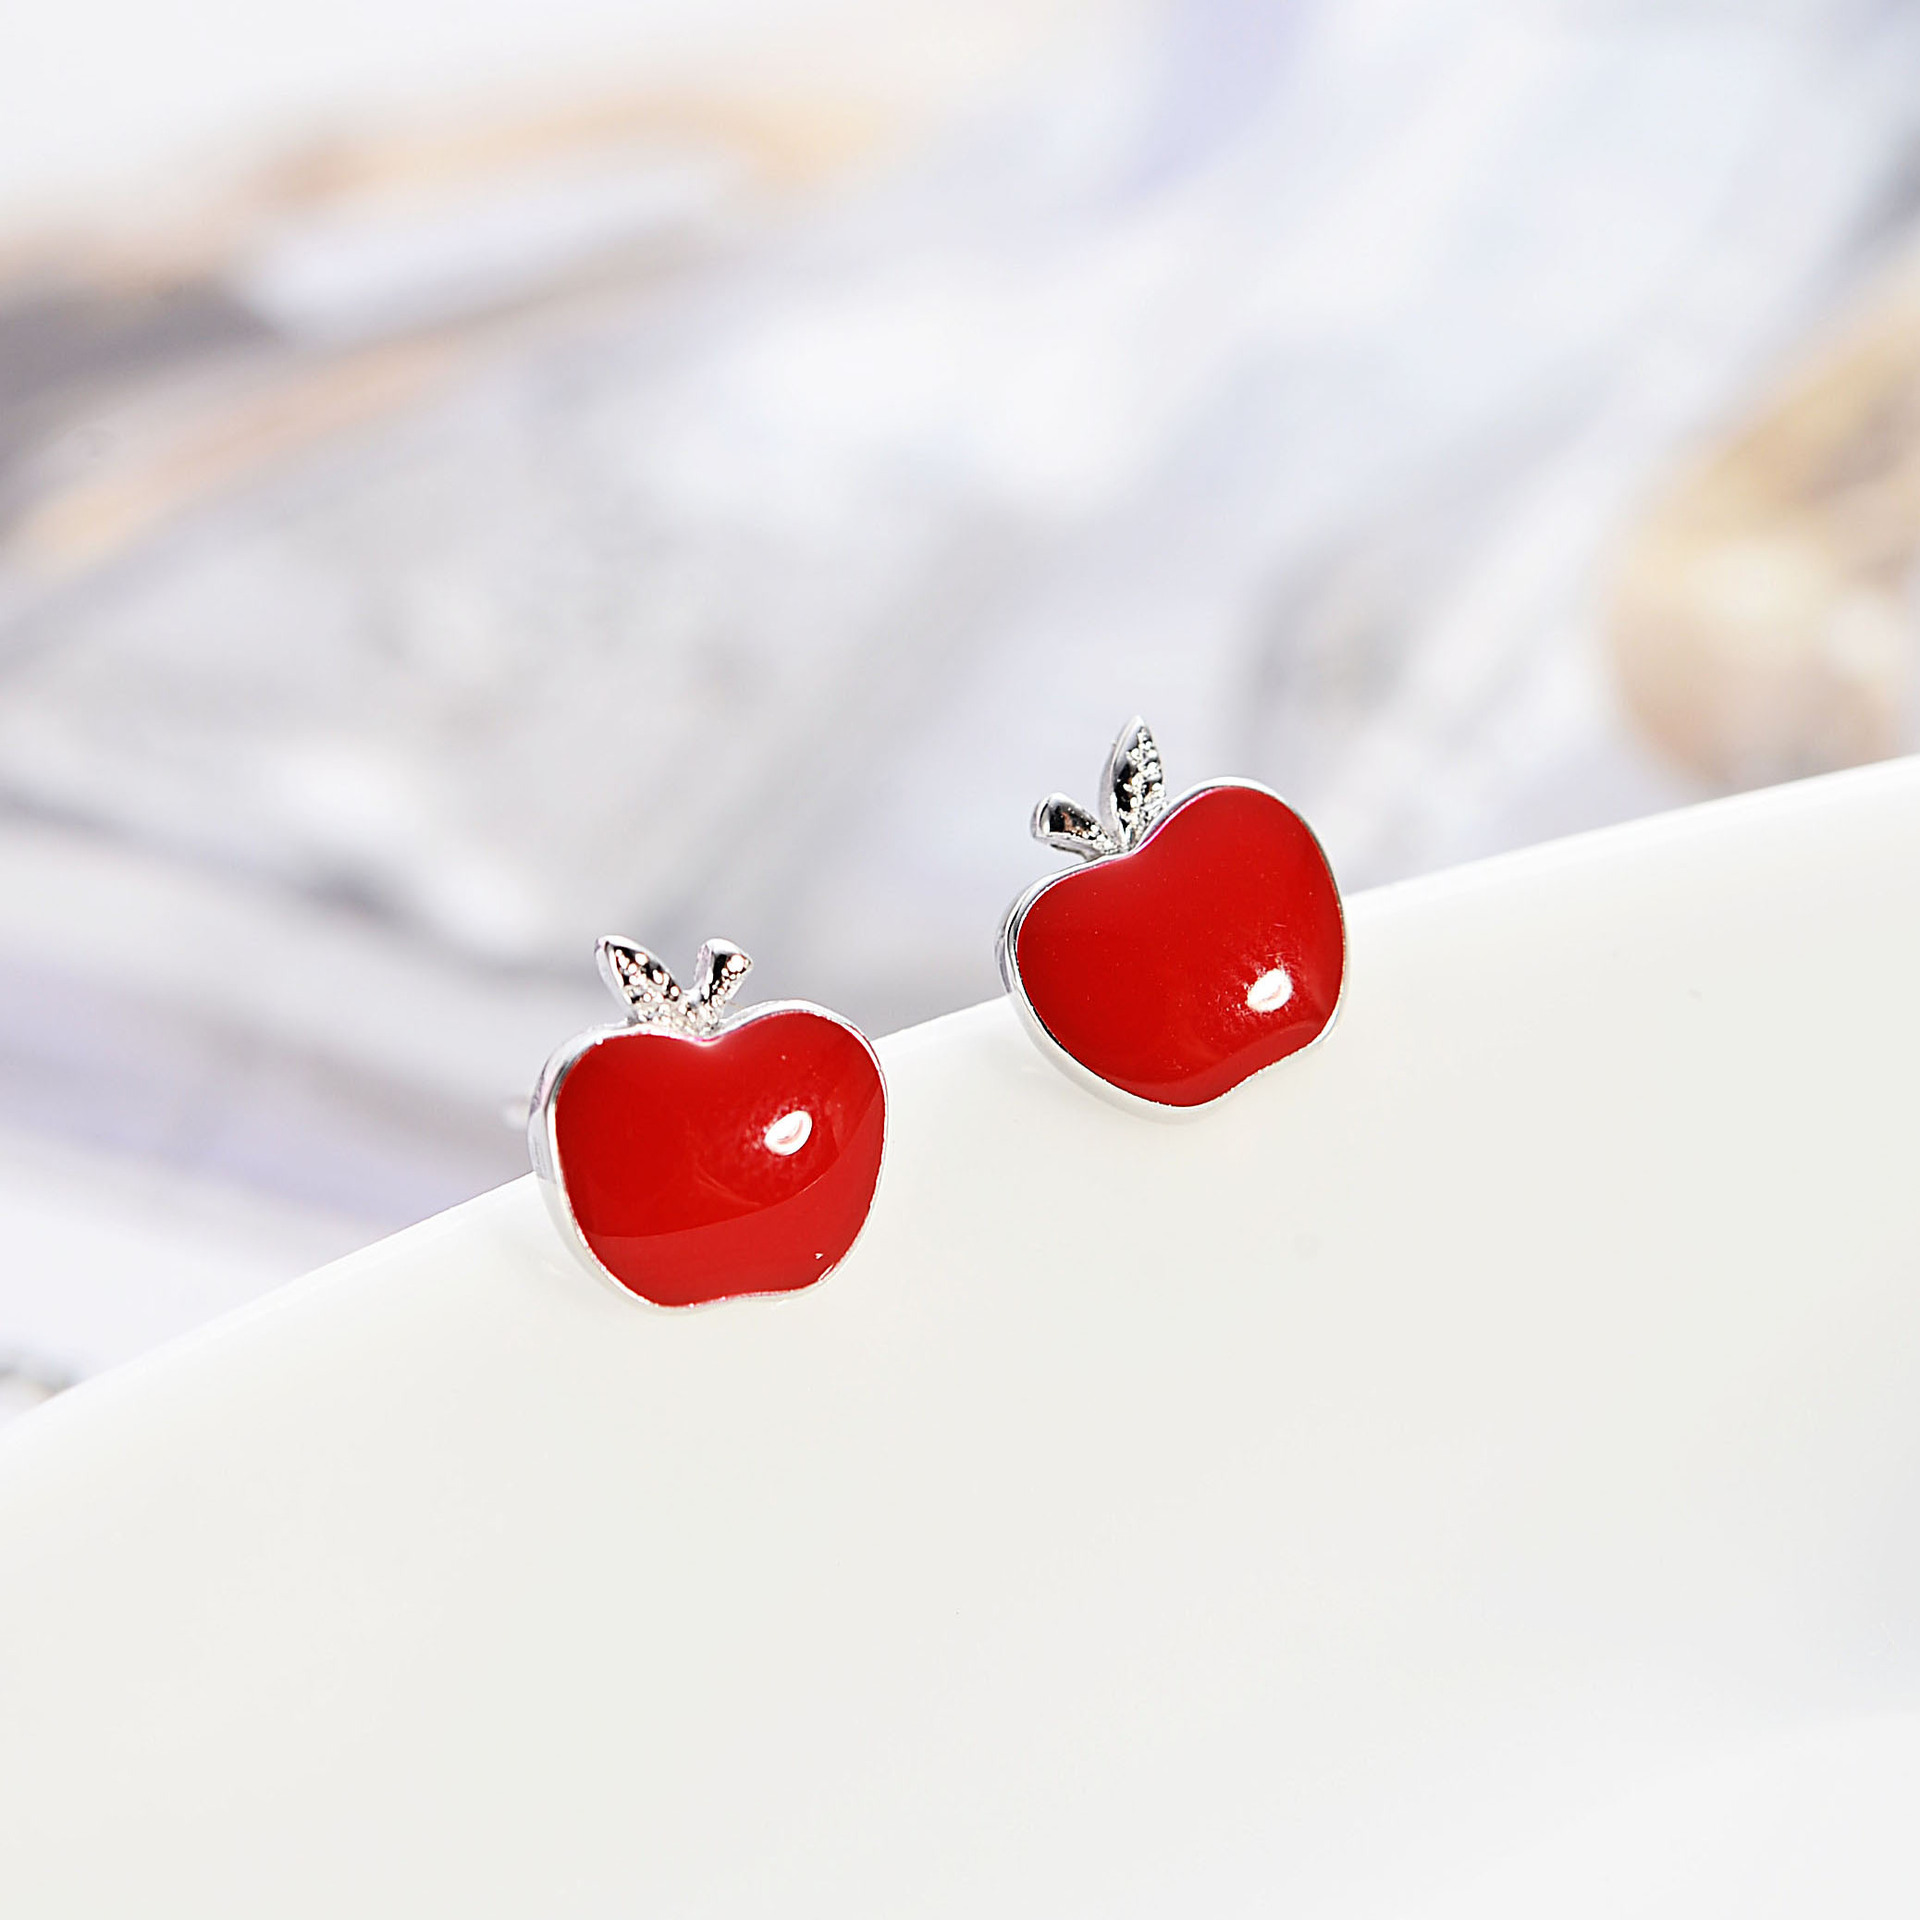 1x Piece of Sterling Silver Mushroom with Hypo-Allergenic Post Stud Earrings